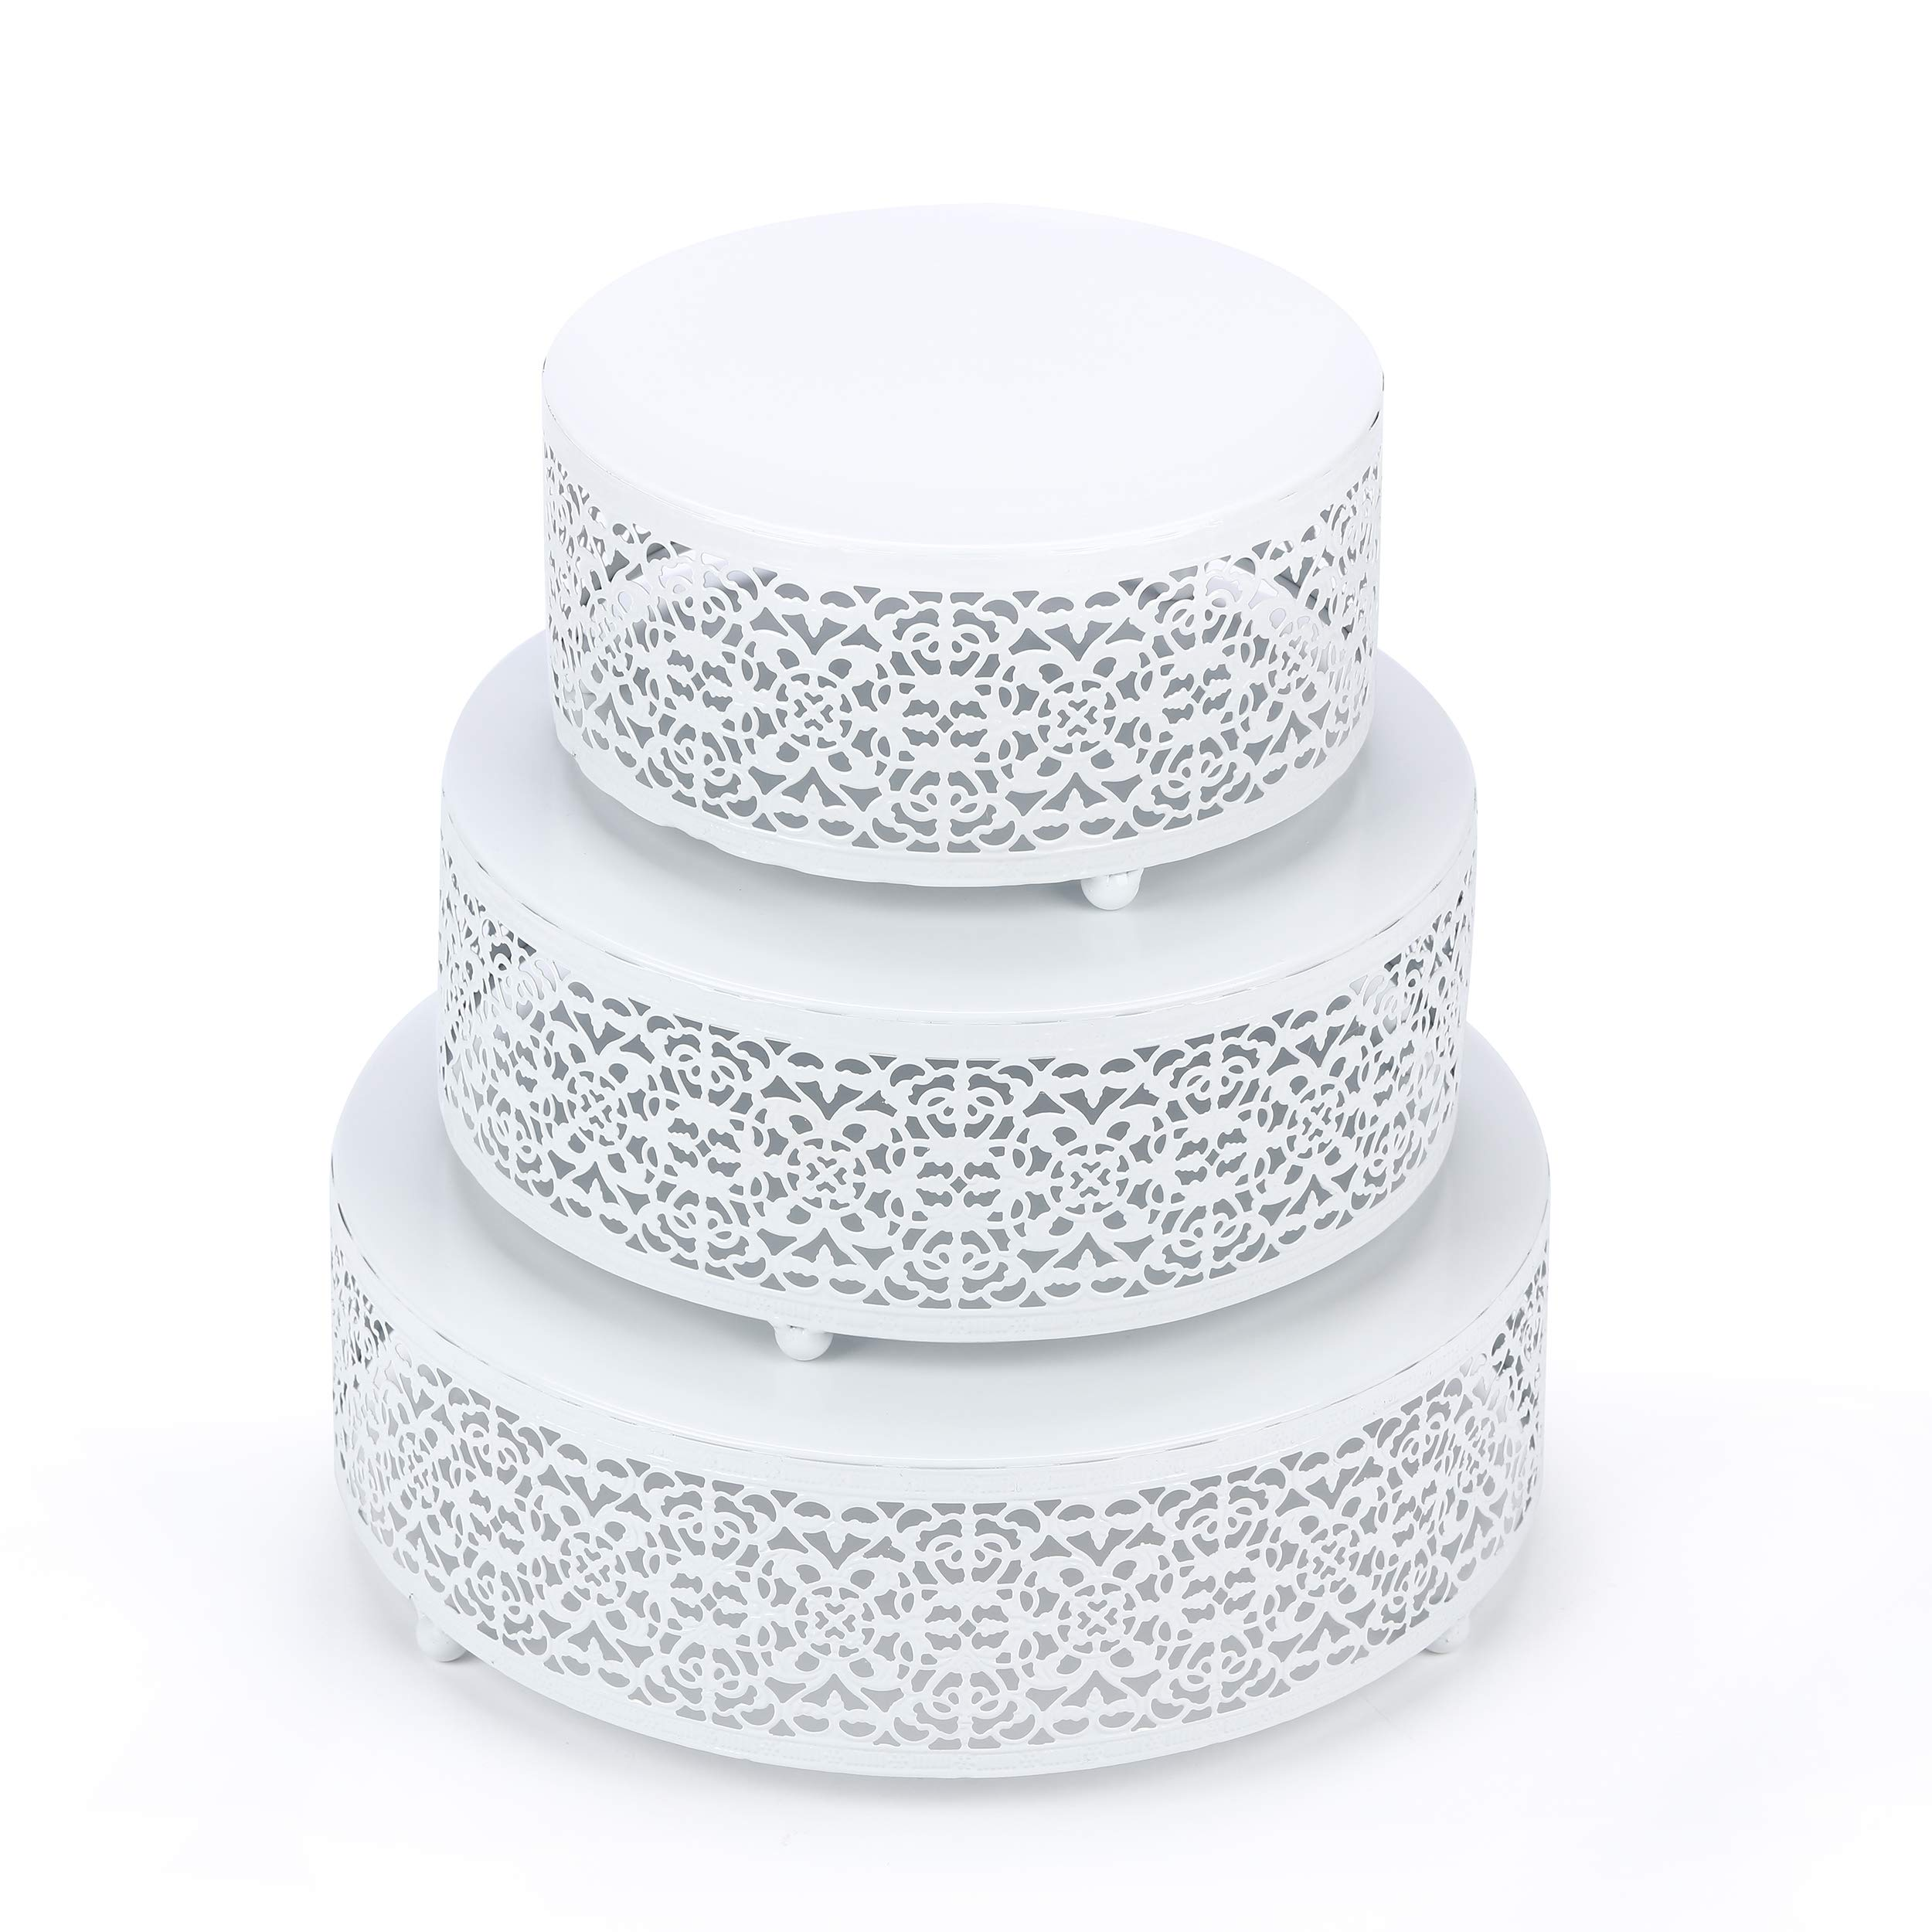 Hotity 3-Piece Cake Stand Set Round Metal Cake Stands Dessert Display Cupcake Stands with Simple Design, White